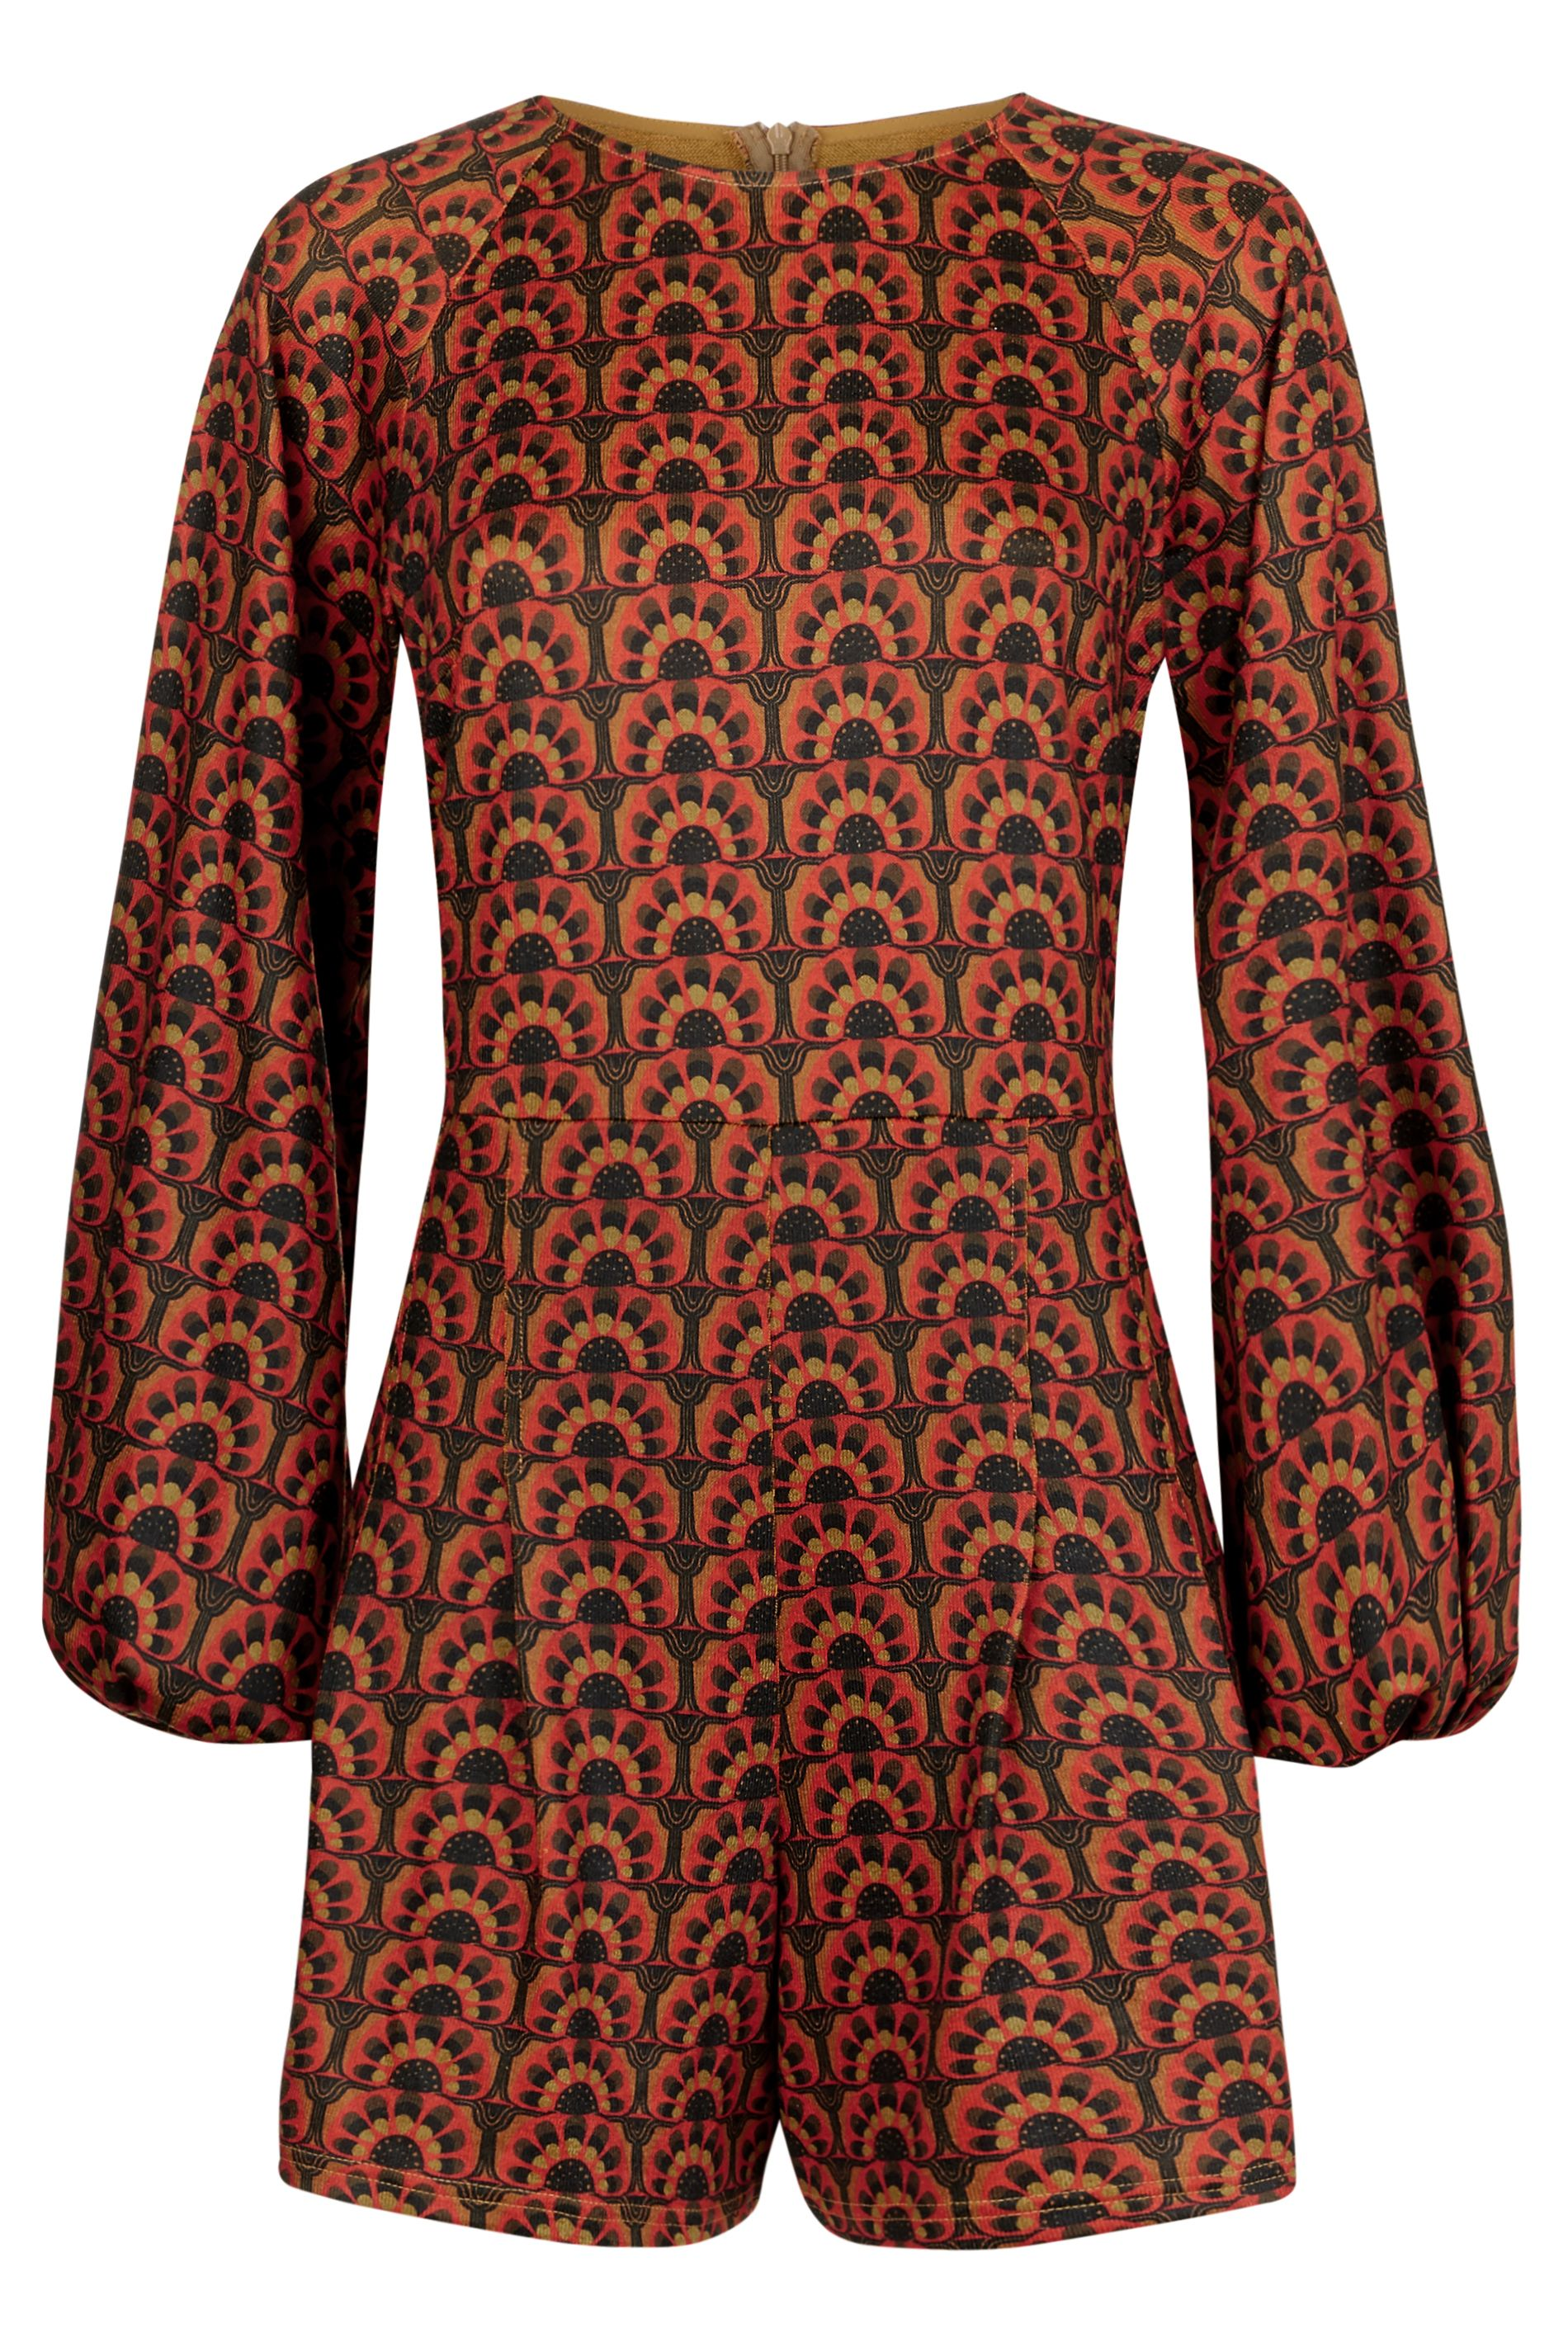 Bambi Tile Print Jersey Playsuit in Orange and Green